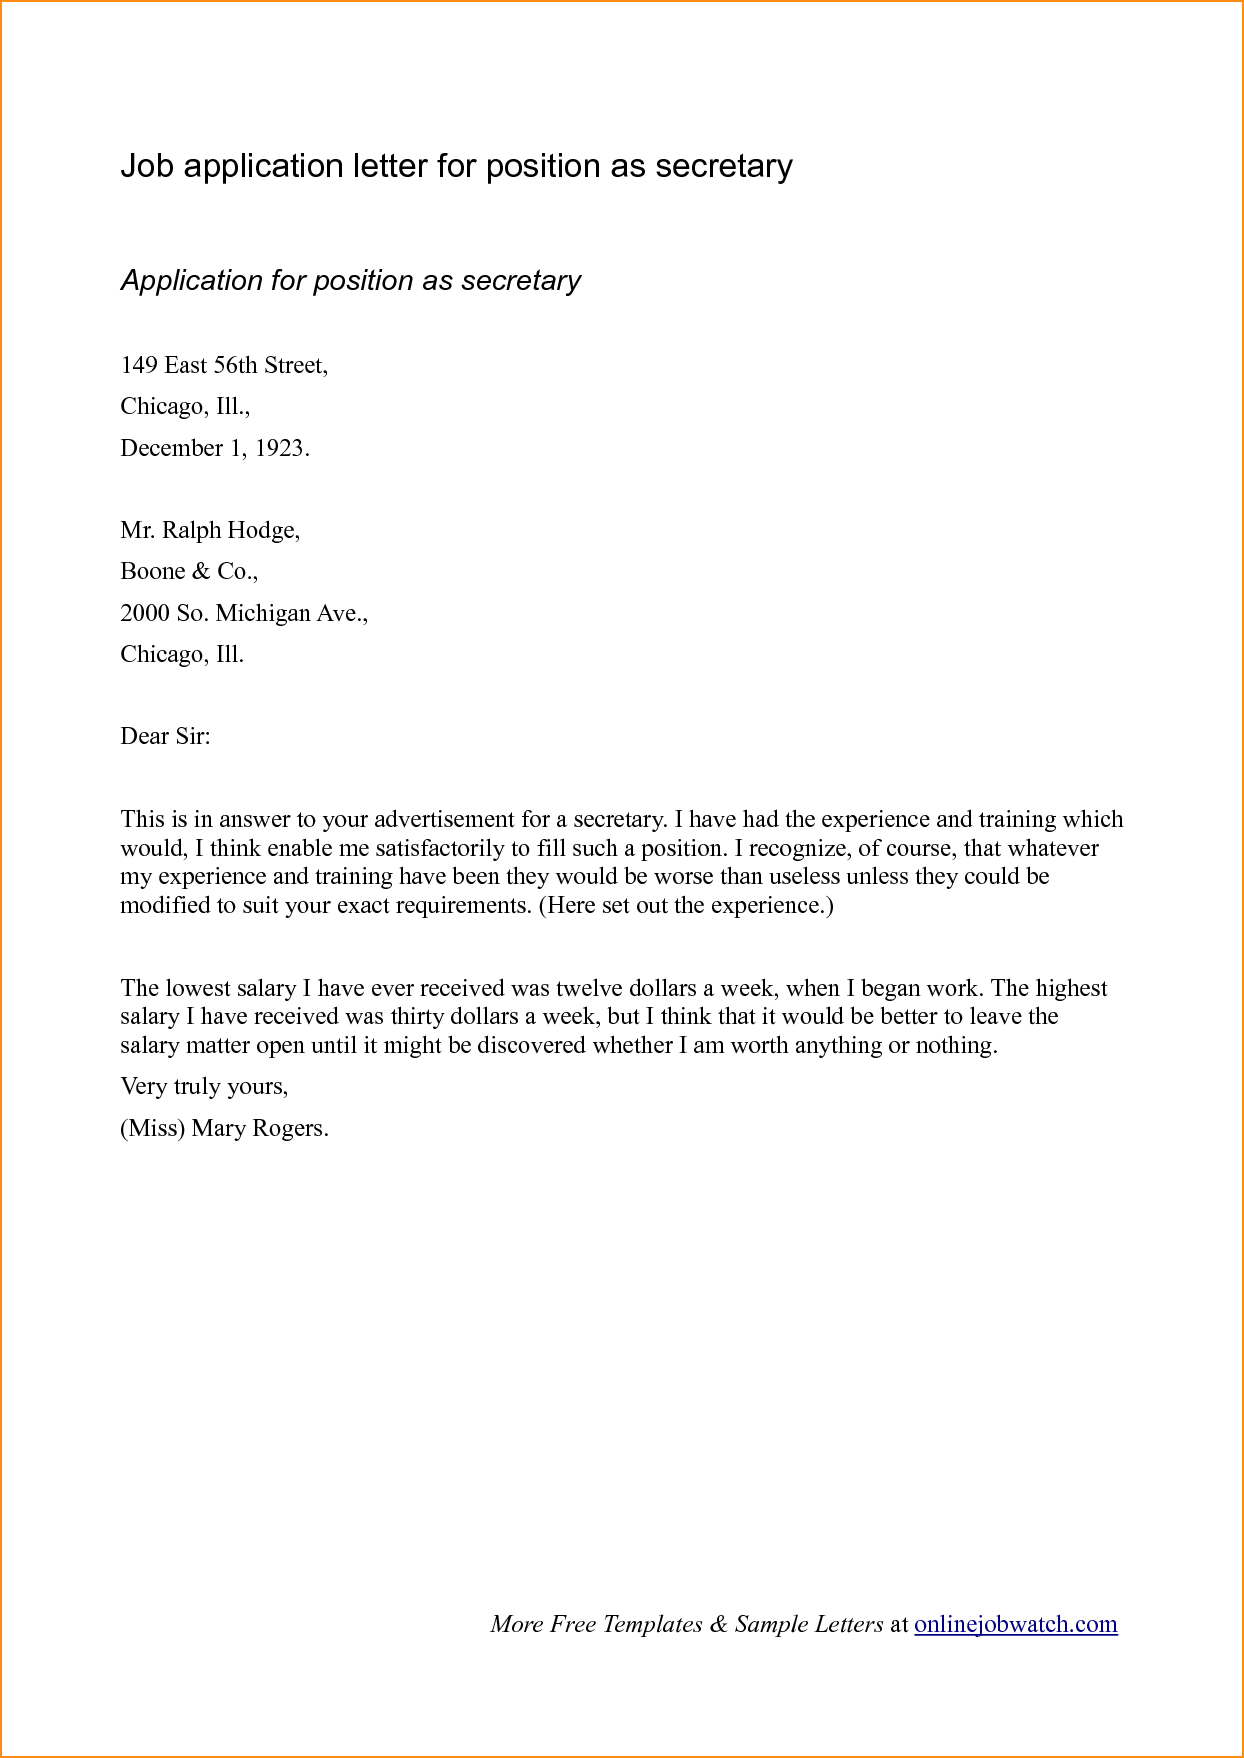 Letter sample eastern illinois university cover example job letter sample eastern illinois university cover example job application letters templates spiritdancerdesigns Images